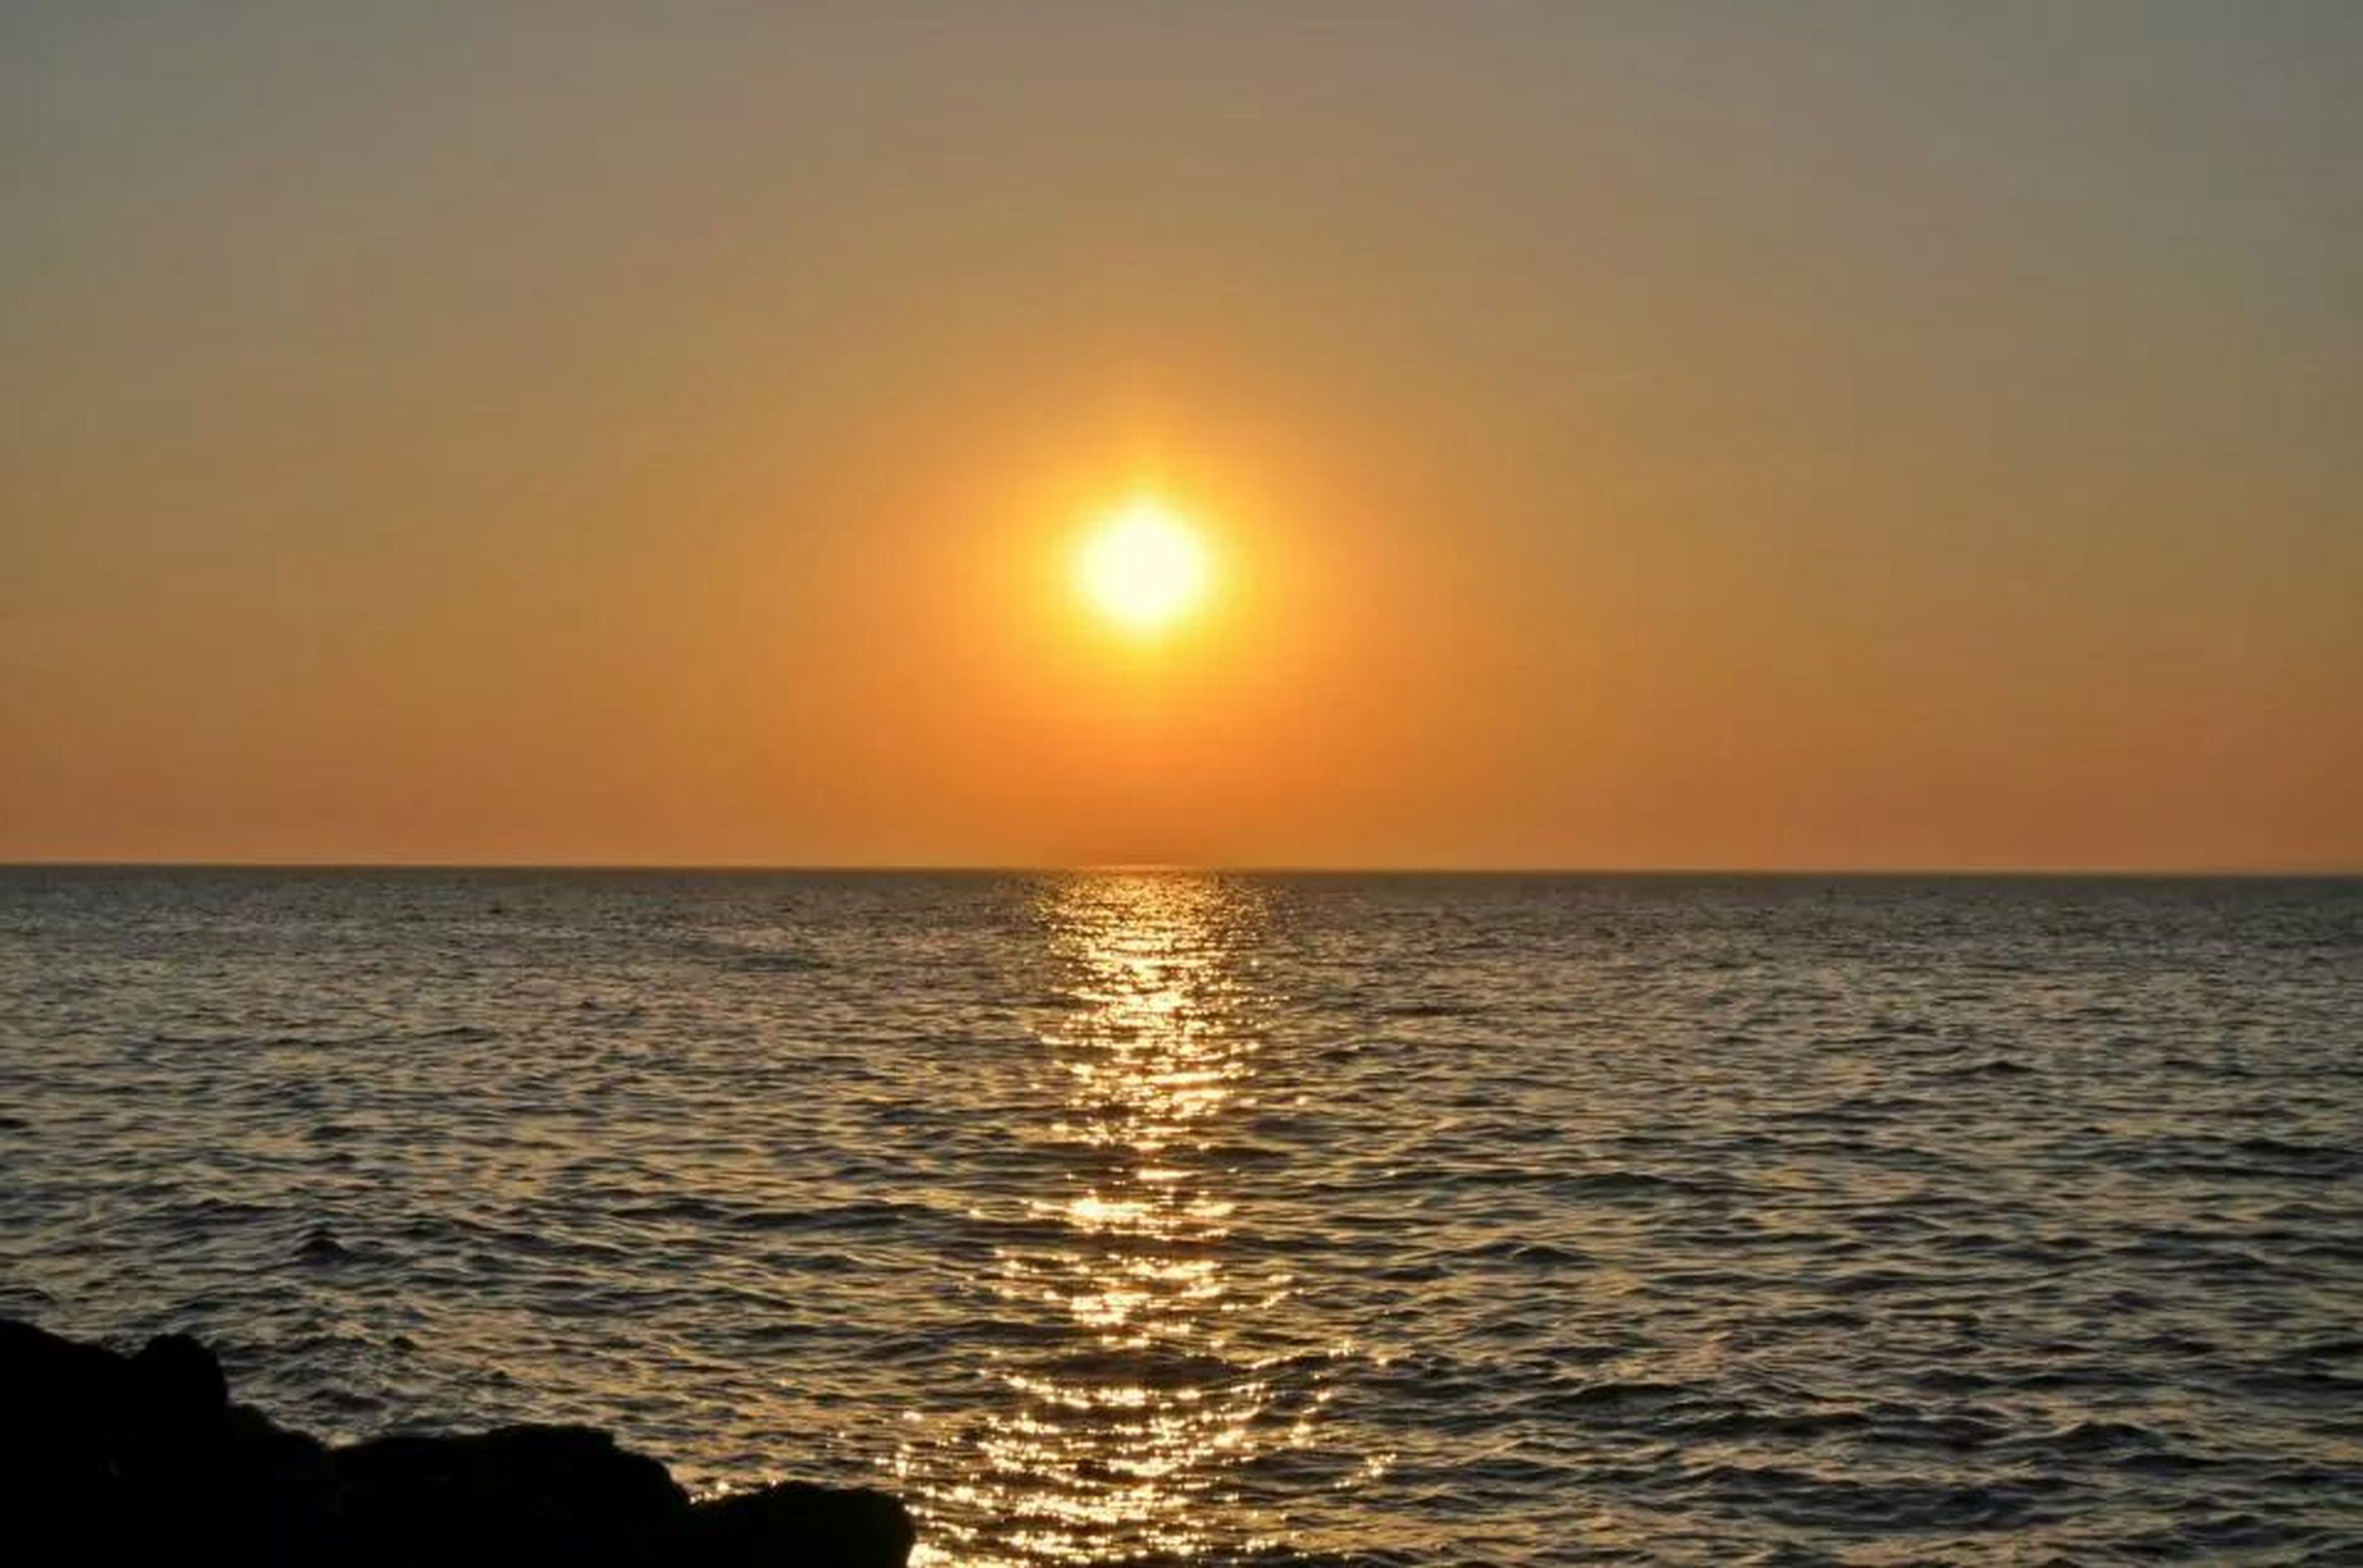 sunset, sea, water, sun, horizon over water, scenics, tranquil scene, beauty in nature, tranquility, orange color, idyllic, waterfront, nature, reflection, rippled, sky, sunlight, silhouette, clear sky, seascape